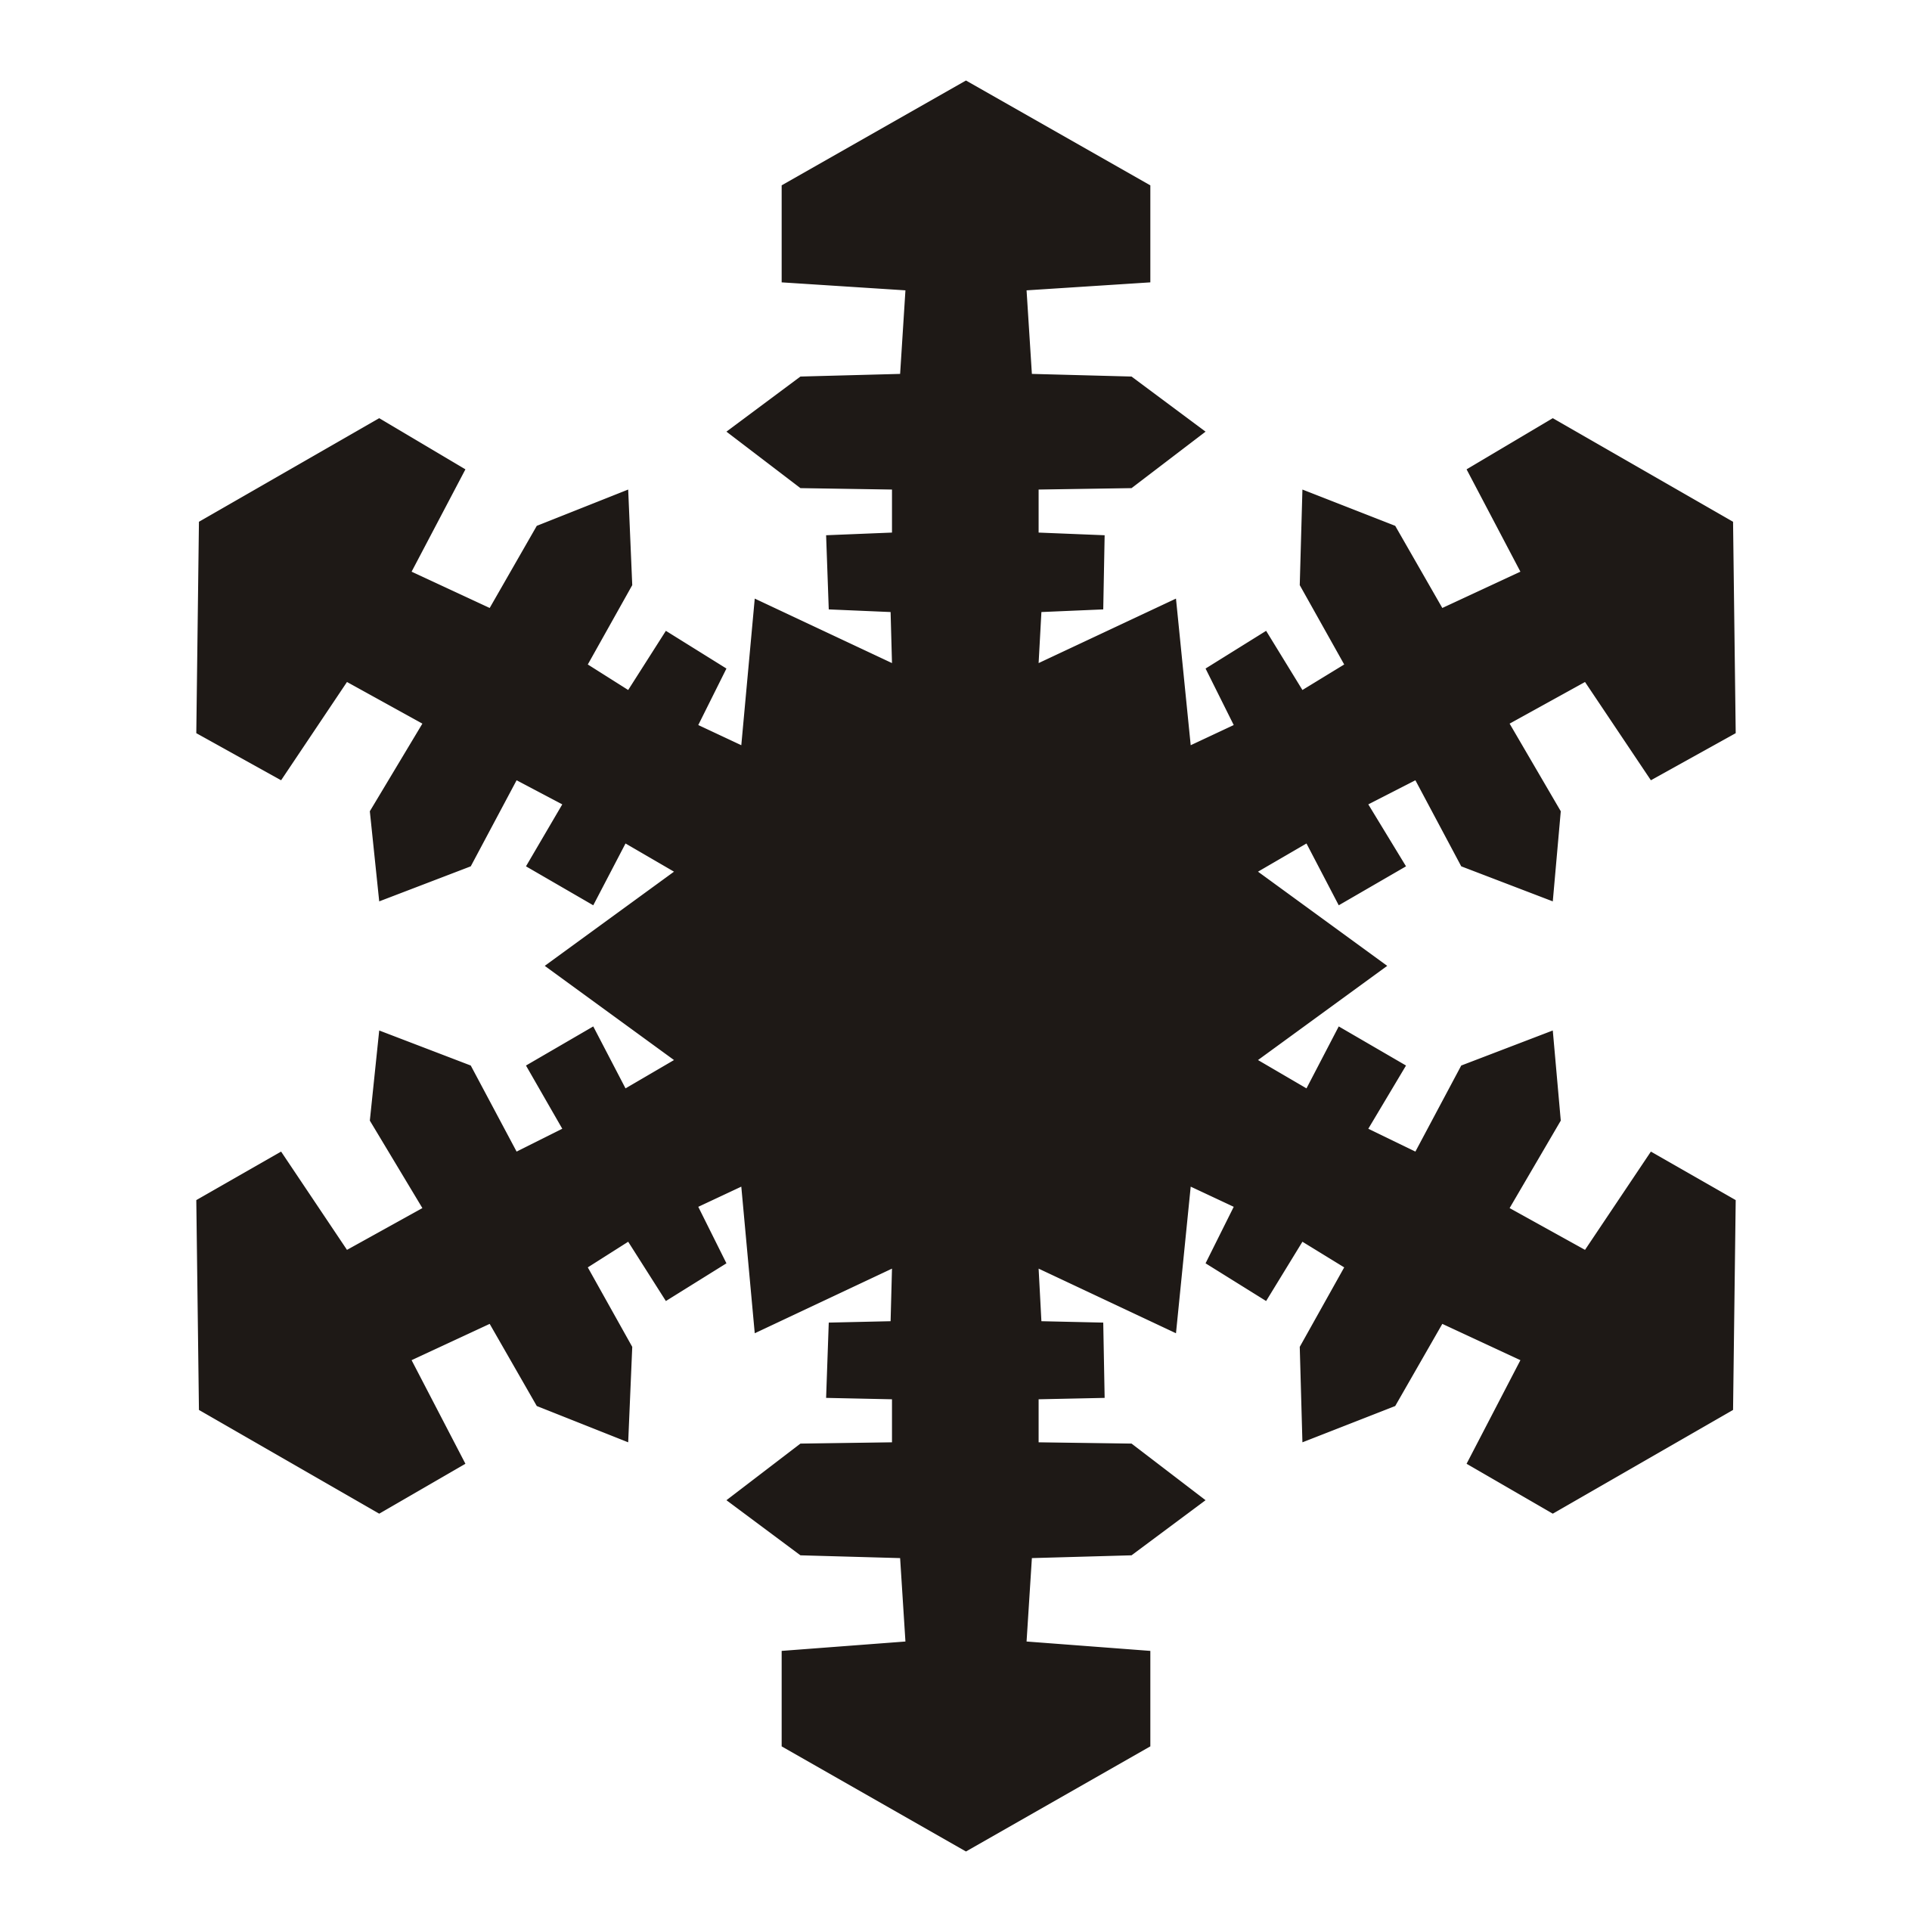 Snowflake clipart black black and white download 19 Snowflakes clipart HUGE FREEBIE! Download for PowerPoint ... black and white download